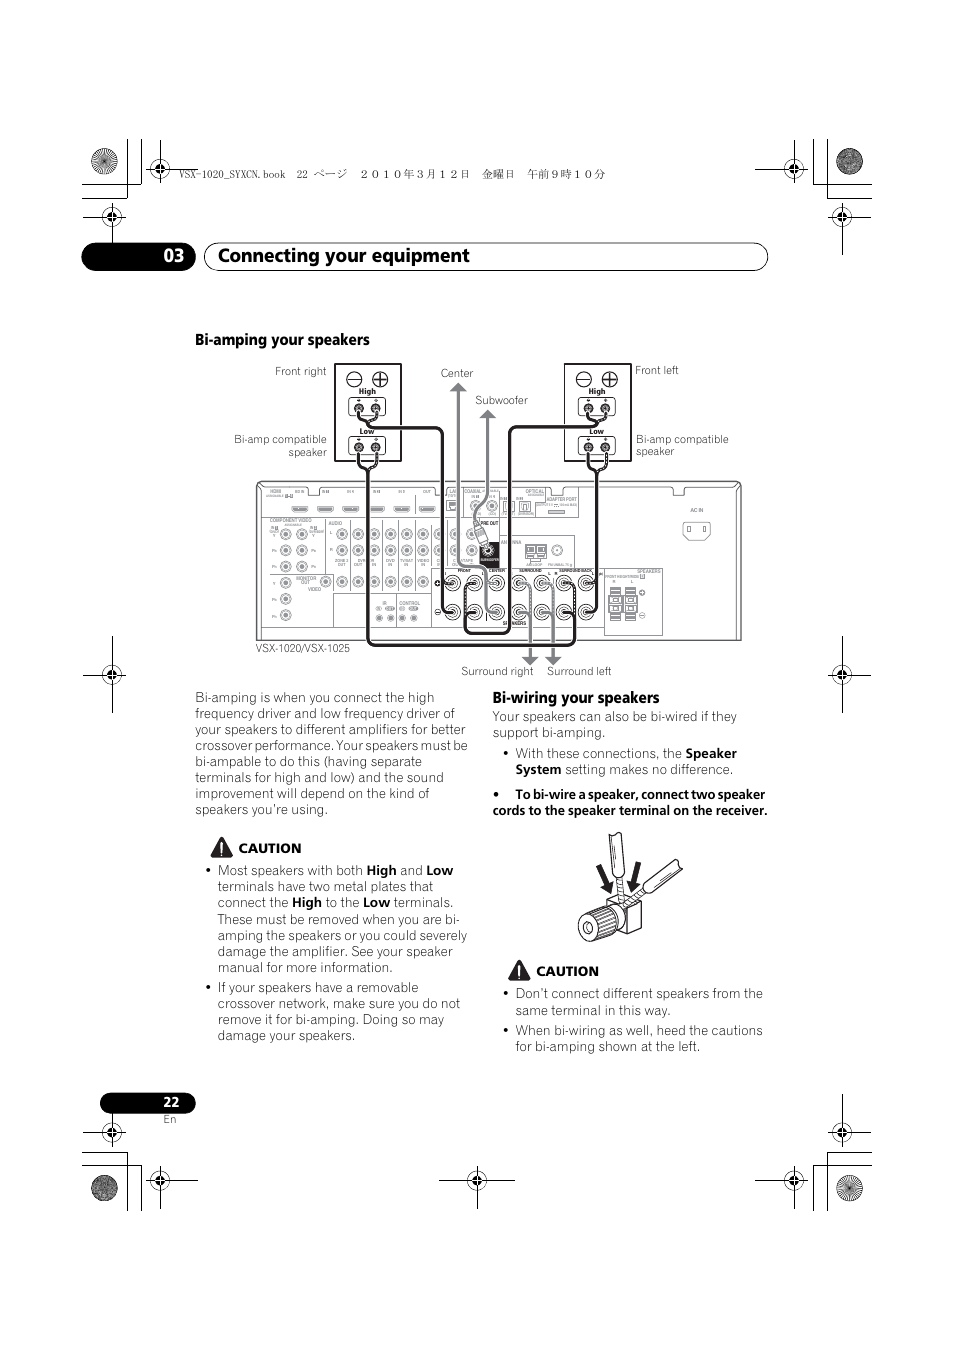 Bi Amping Your Speakers Caution Wiring Pioneer 1020 John Deere Diagram Vsx 920 K User Manual Page 22 400